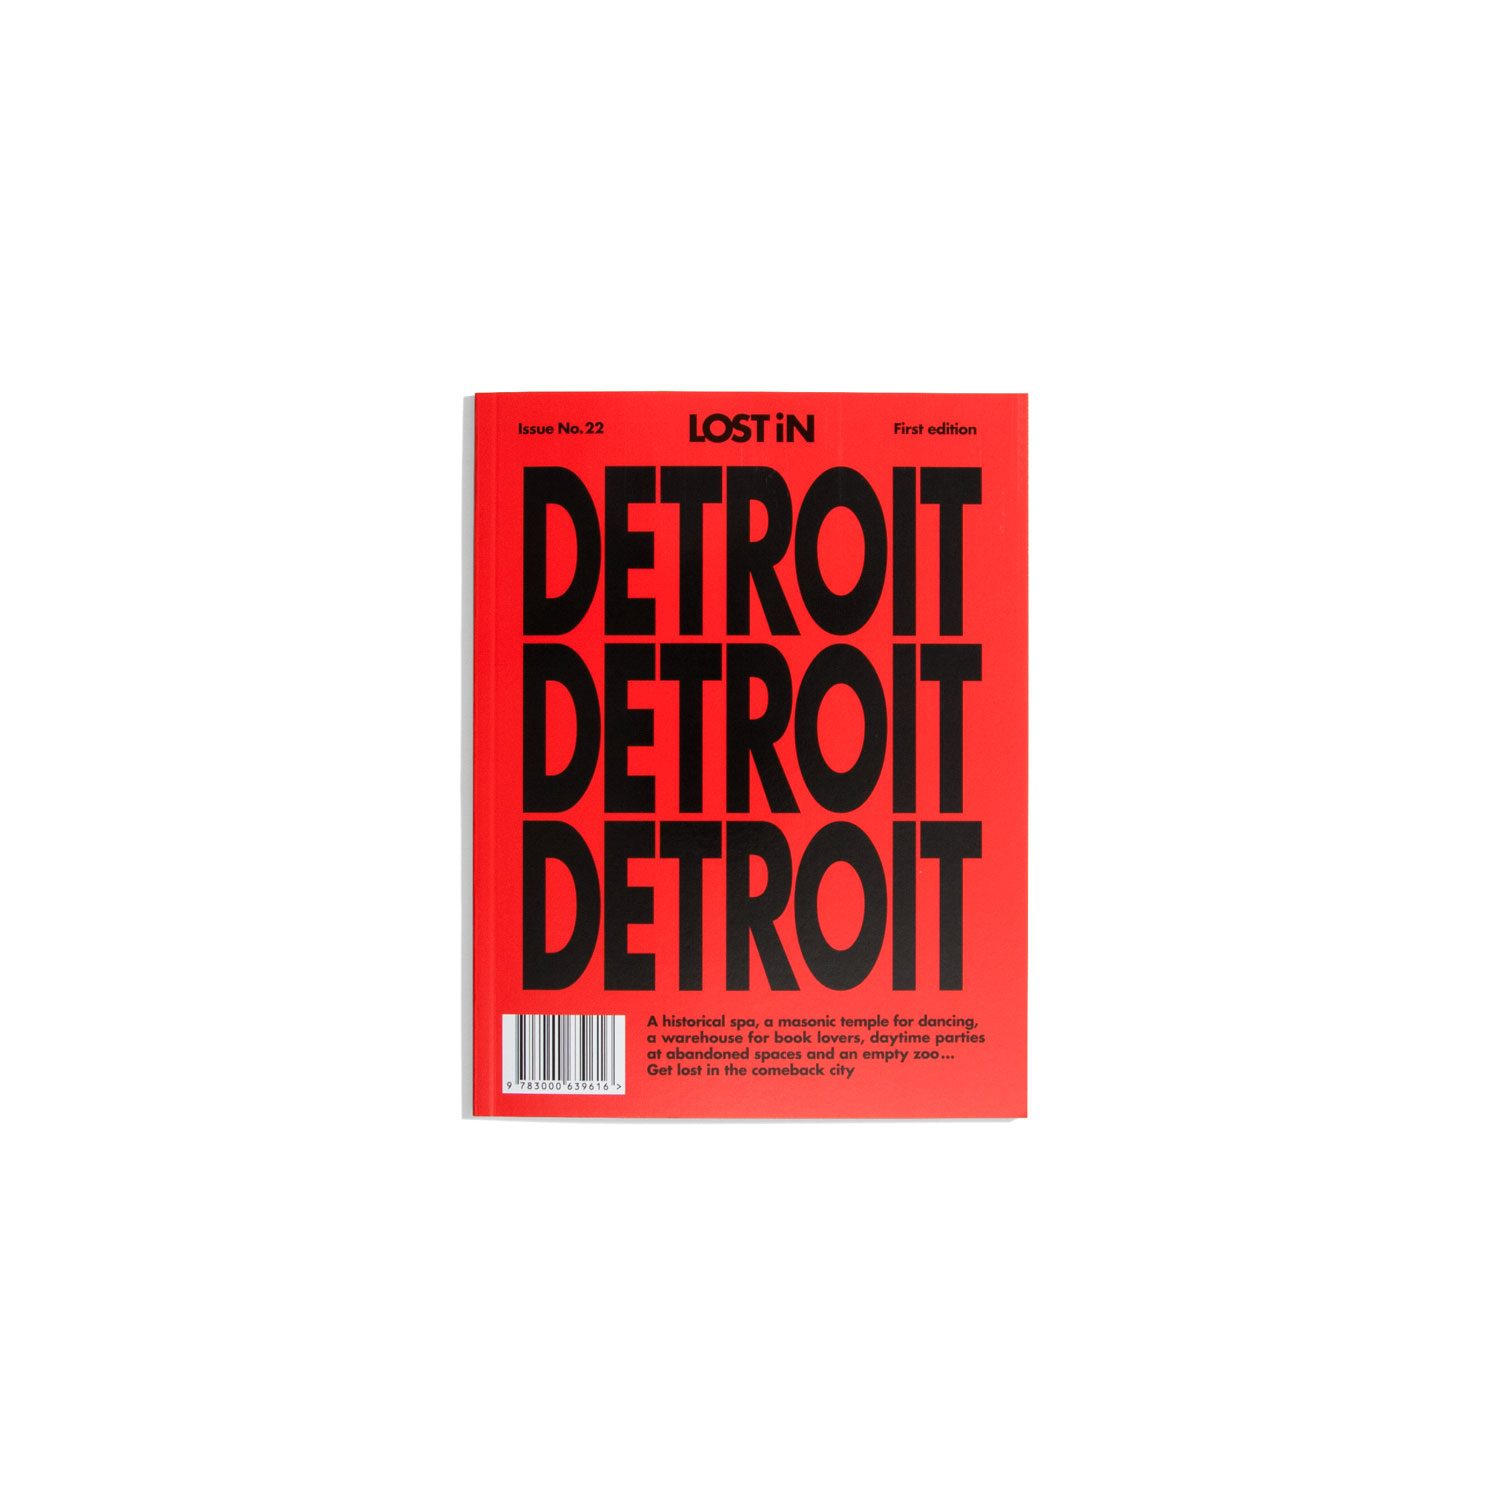 Lost in - Detroit